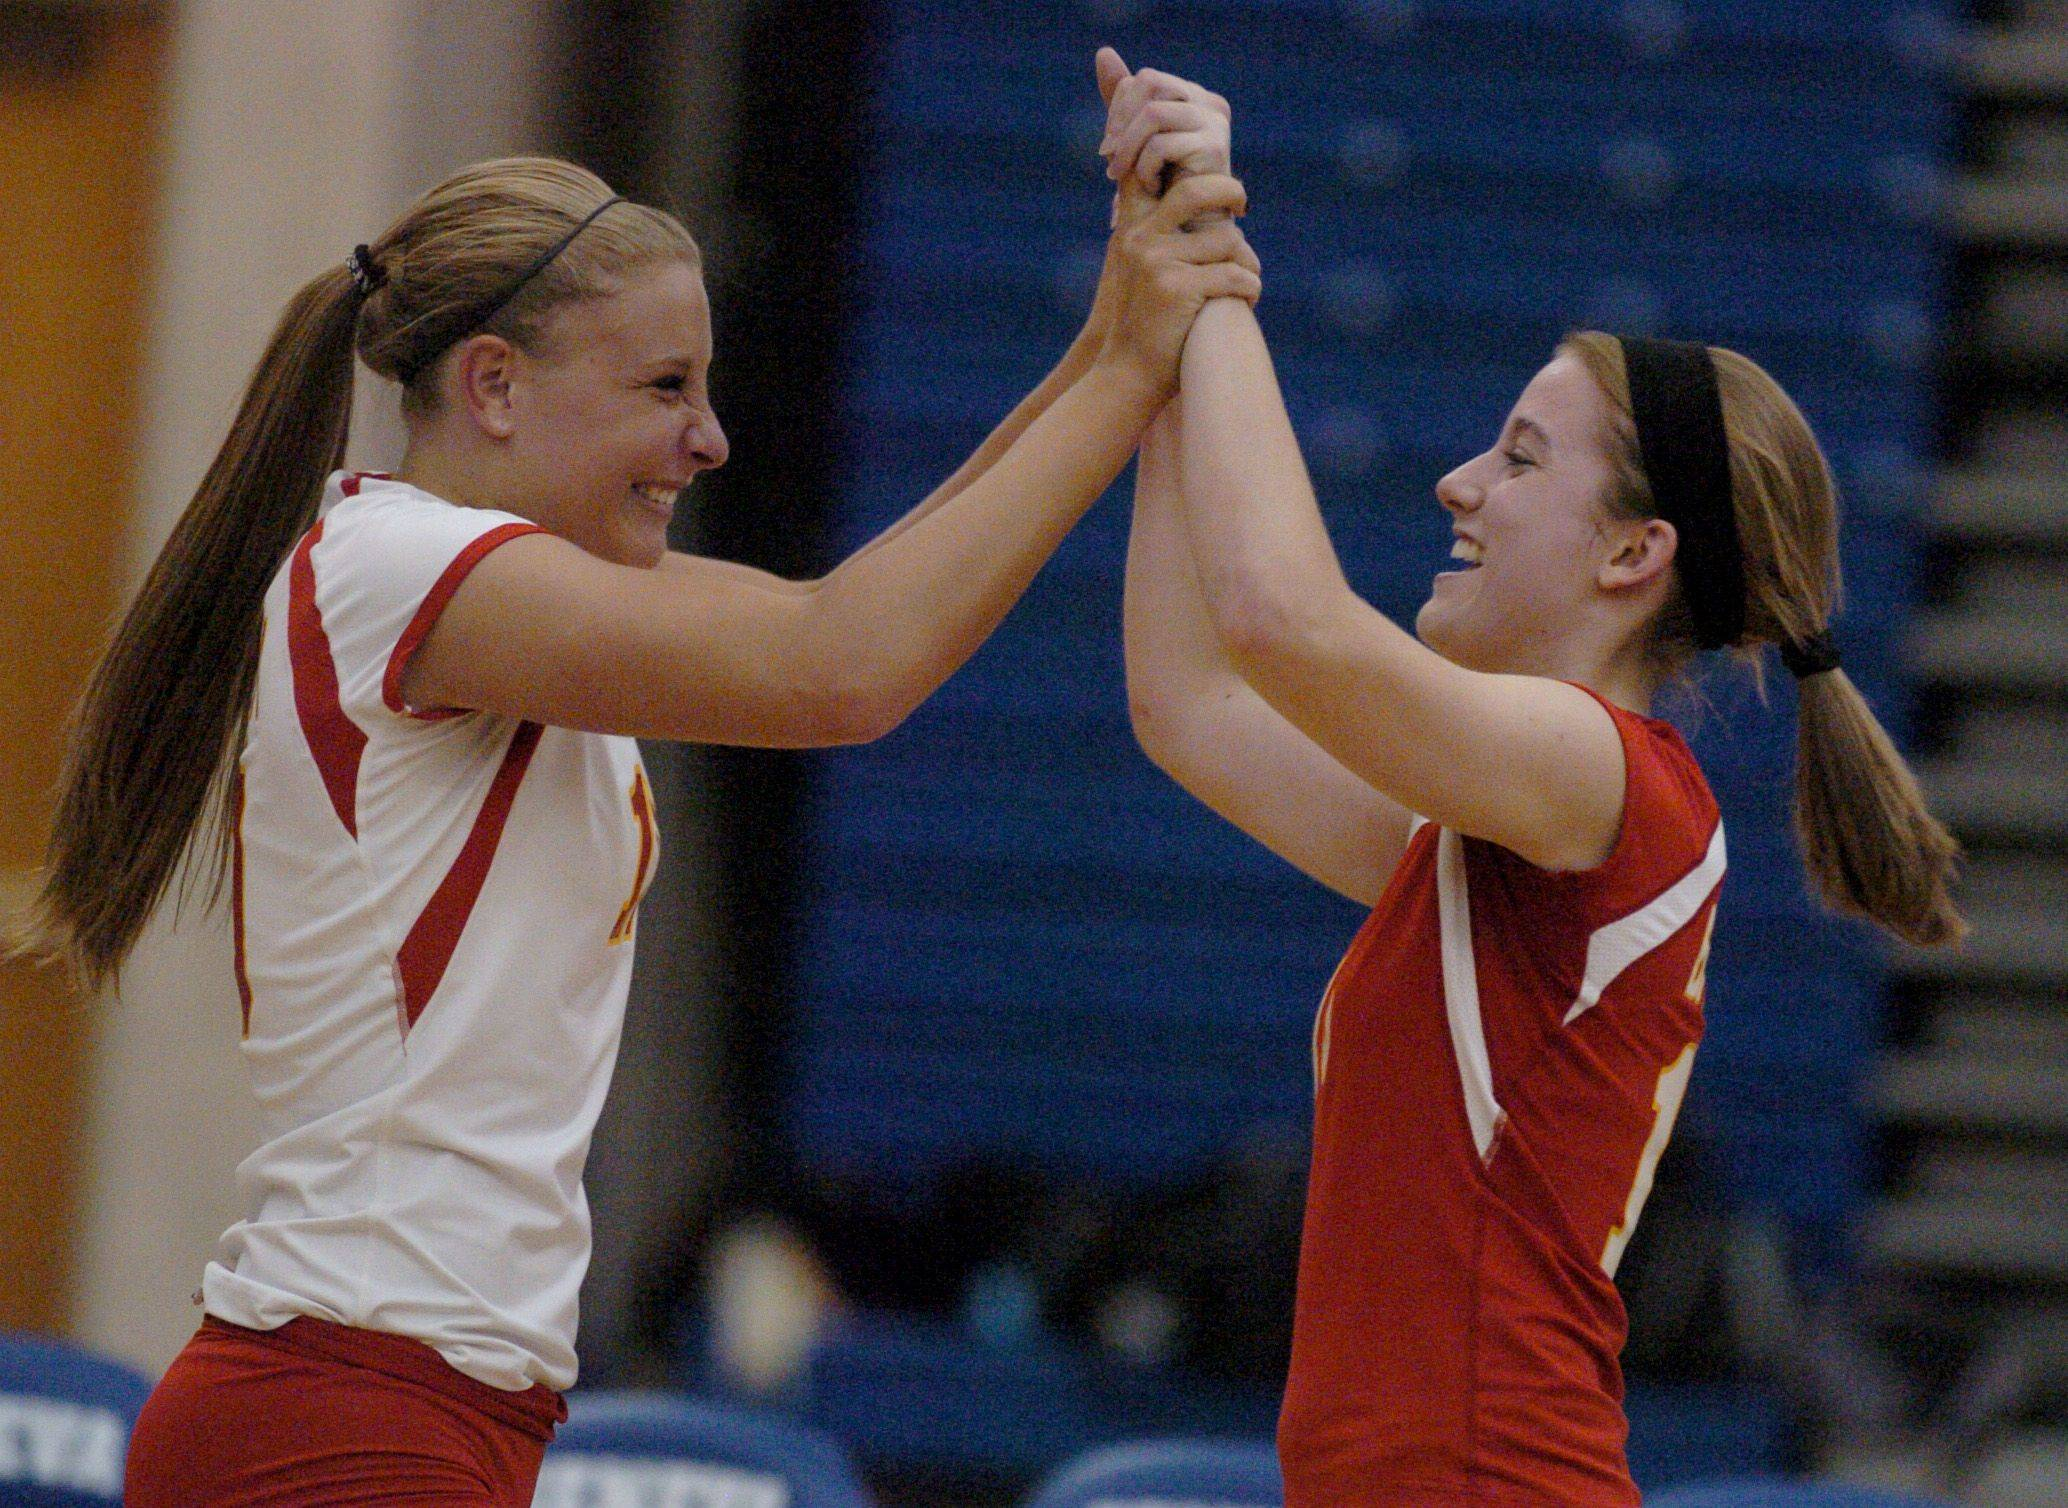 Batavia teammates, Caitlin Piechota and Stephanie Kinane, high five after defeating Metea Valley for their second win at the IHSA Regional Volleyball game at Geneva High School Thursday evening.